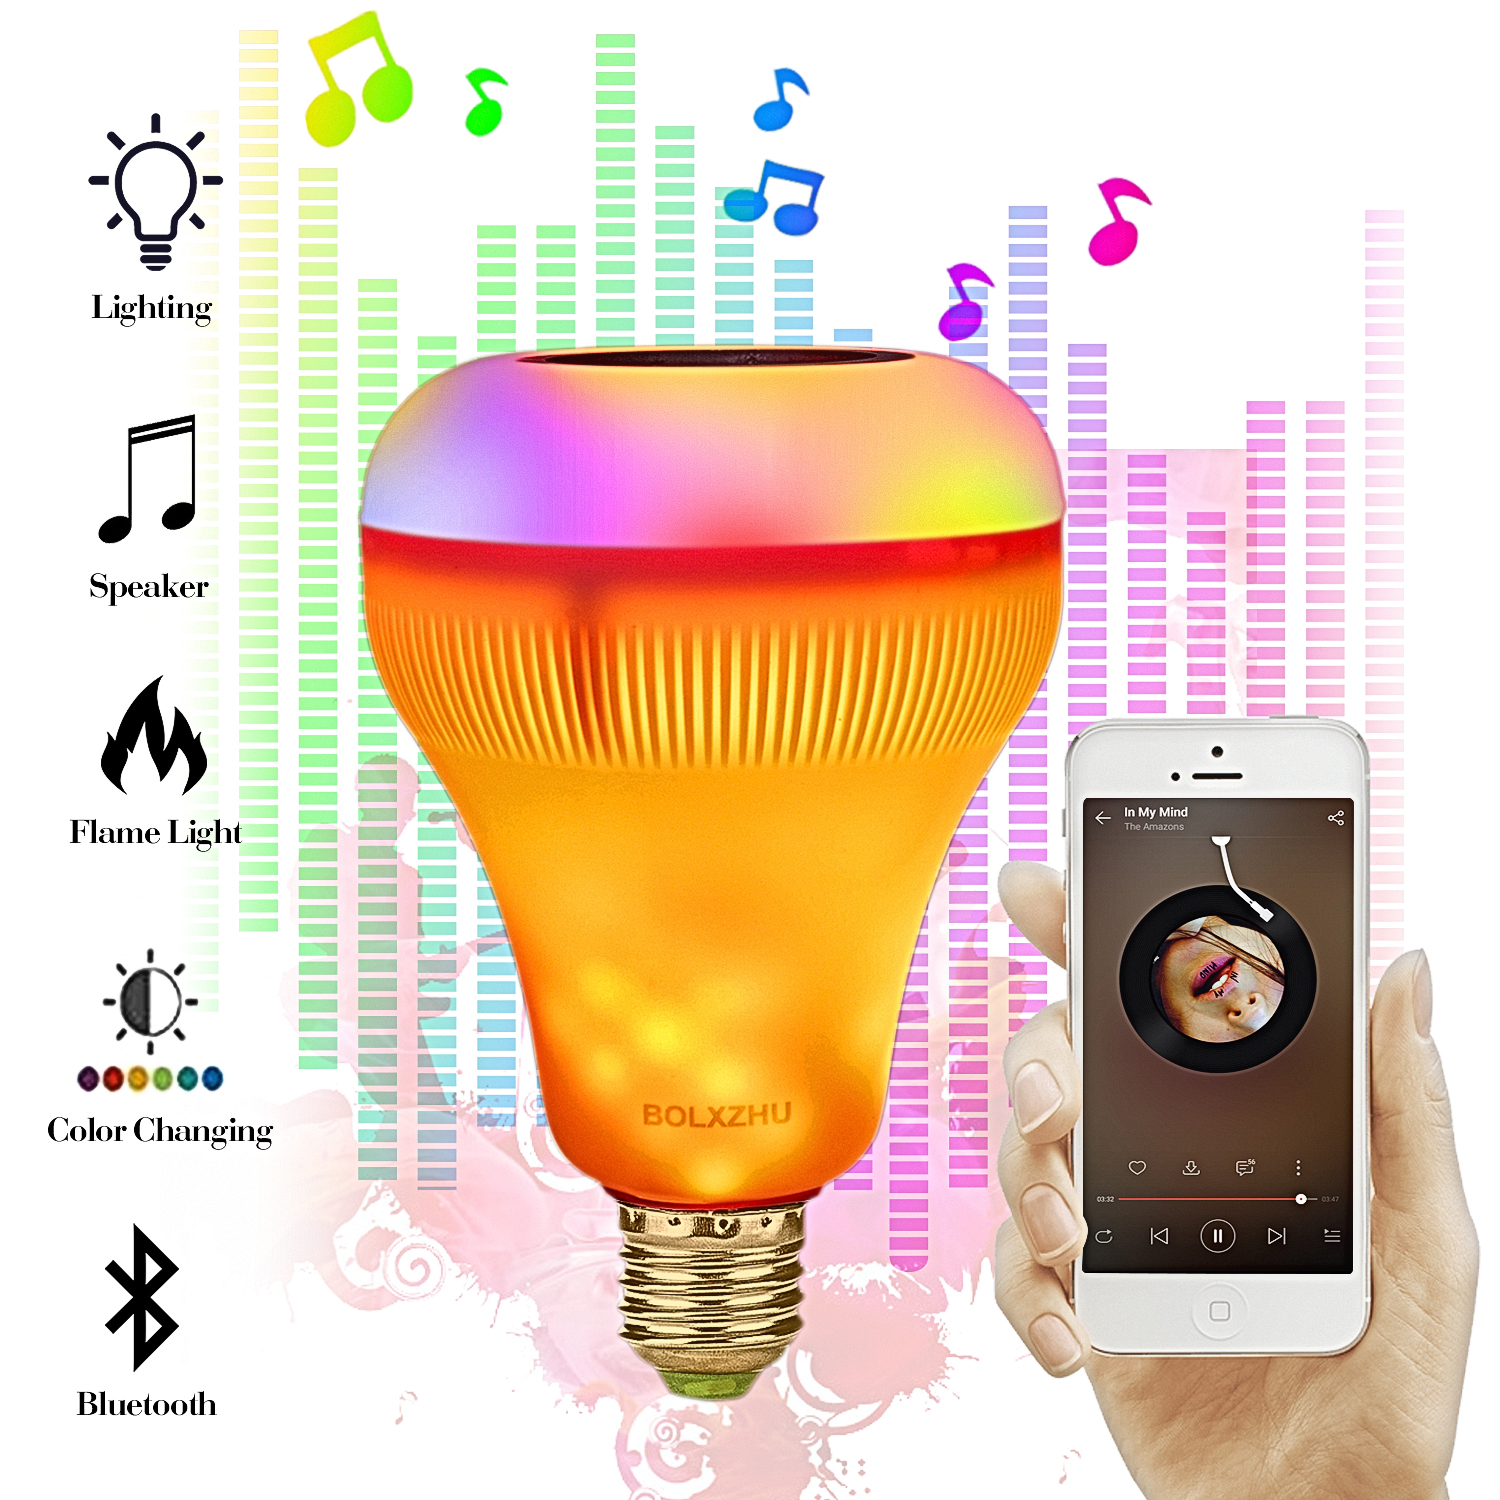 E27 Smart RGB Wireless Bluetooth Speaker Bulb Music Playing Dimmable LED RGB Music Bulb Light Lamp with 24 Keys Remote ControlE27 Smart RGB Wireless Bluetooth Speaker Bulb Music Playing Dimmable LED RGB Music Bulb Light Lamp with 24 Keys Remote Control